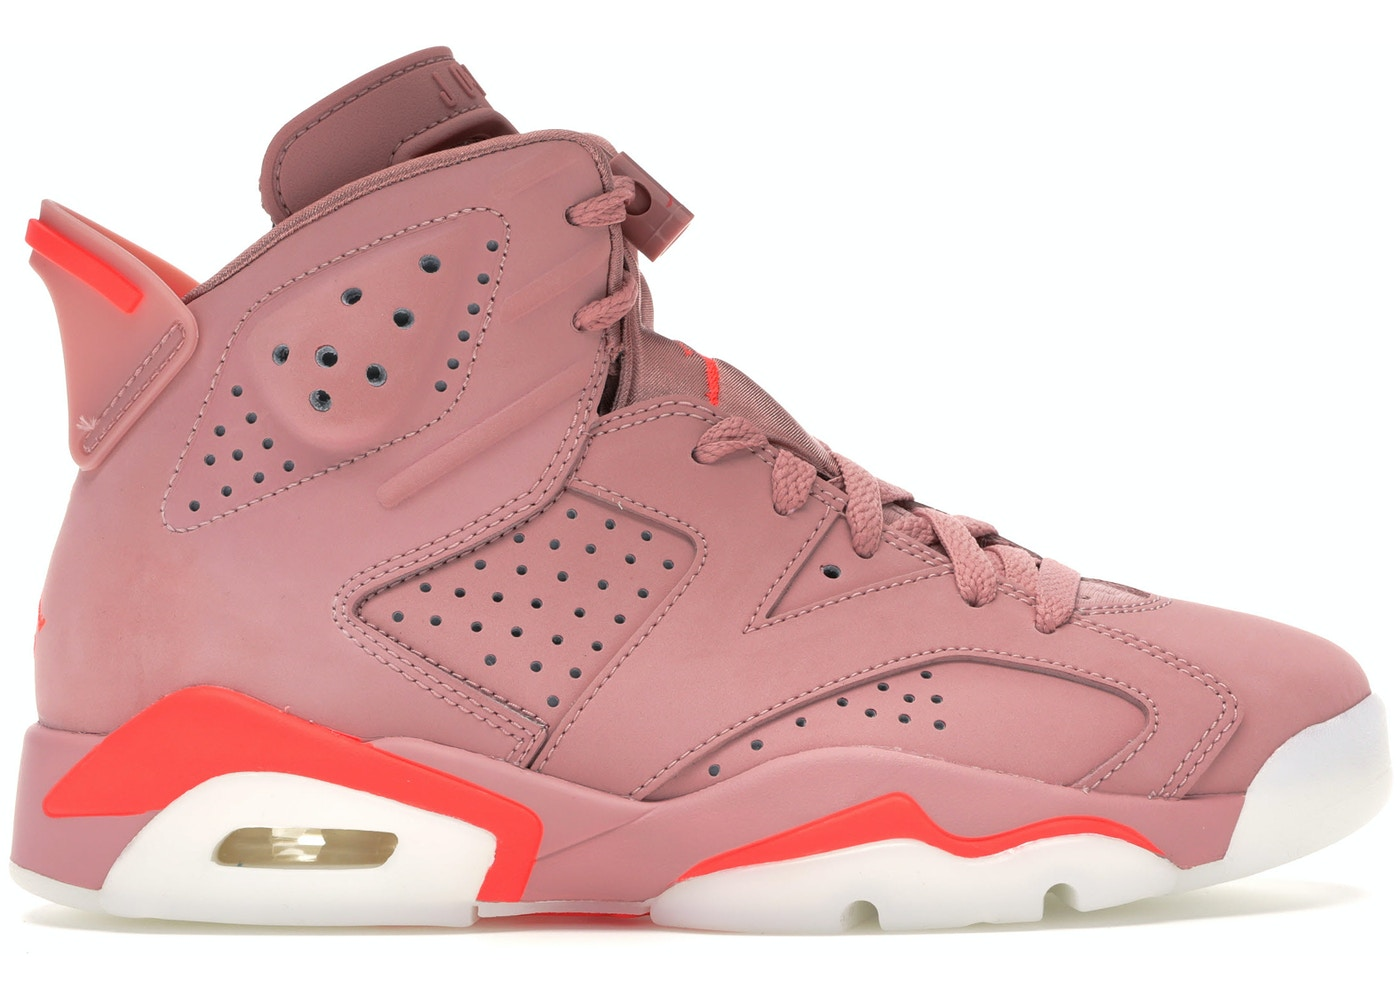 Jordan 6 Retro Aleali May (W) - CI0550-600 1fbf44e36150